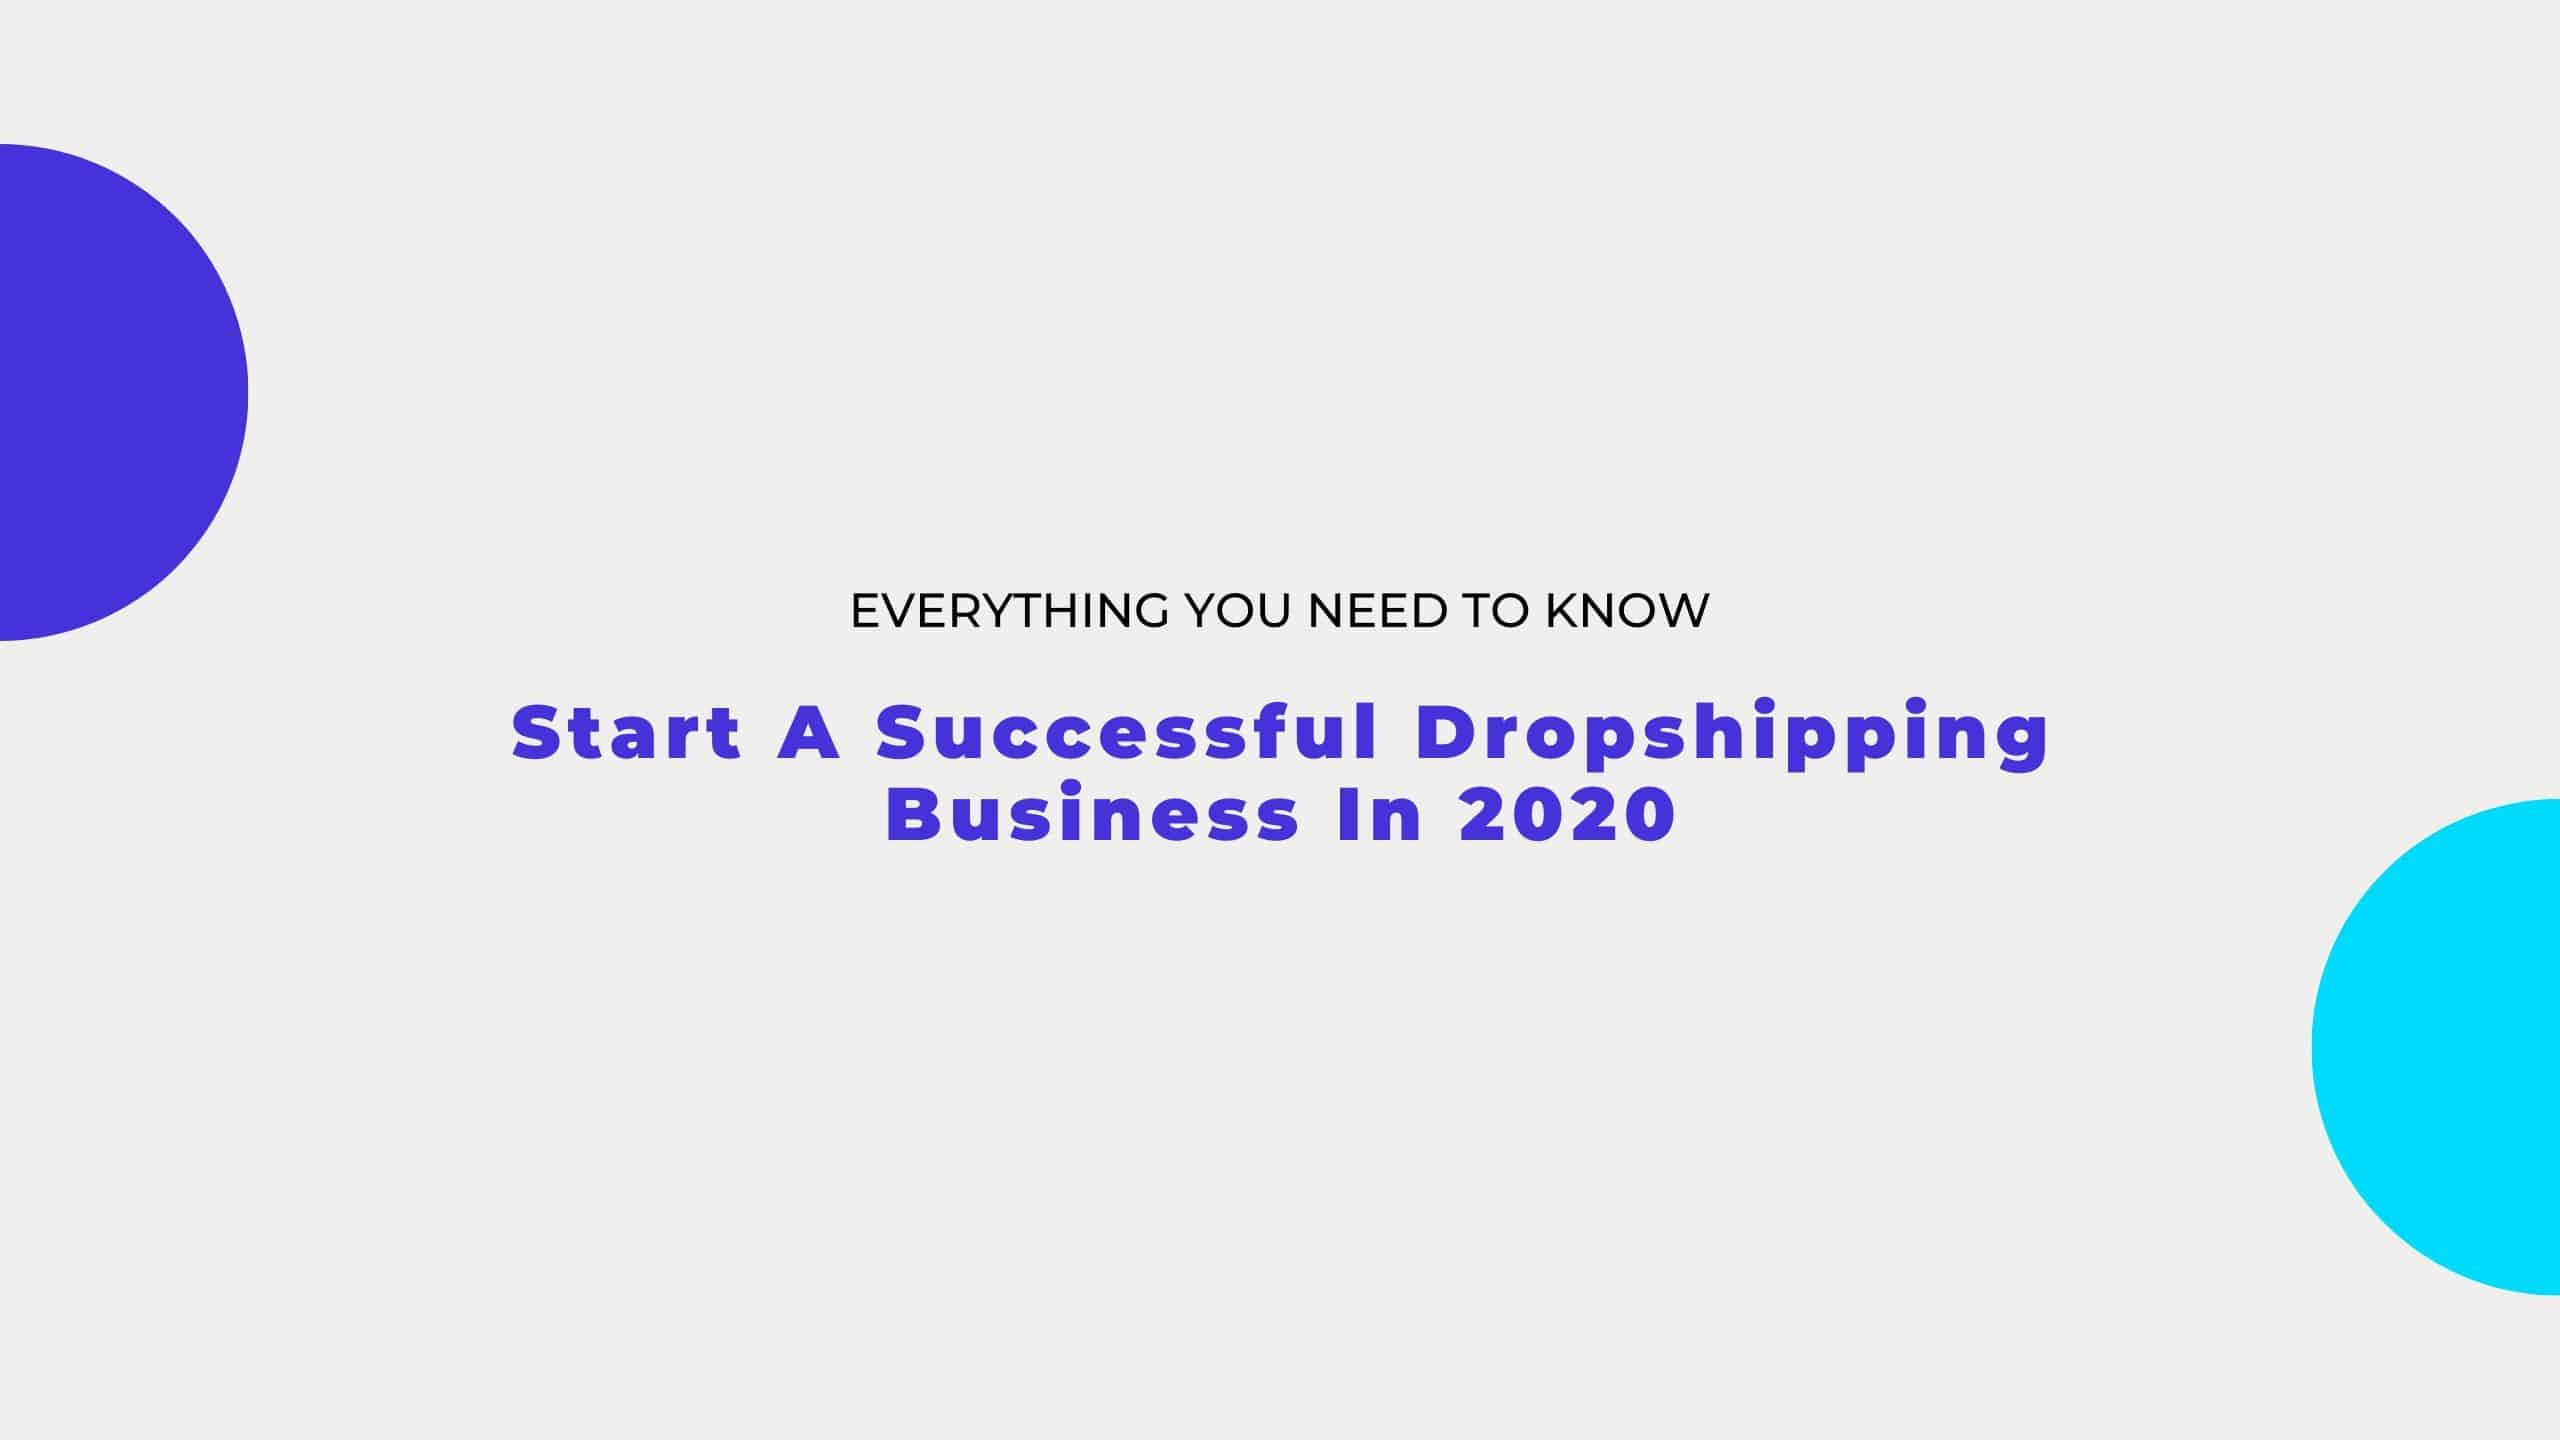 Start a dropshipping business in 2020